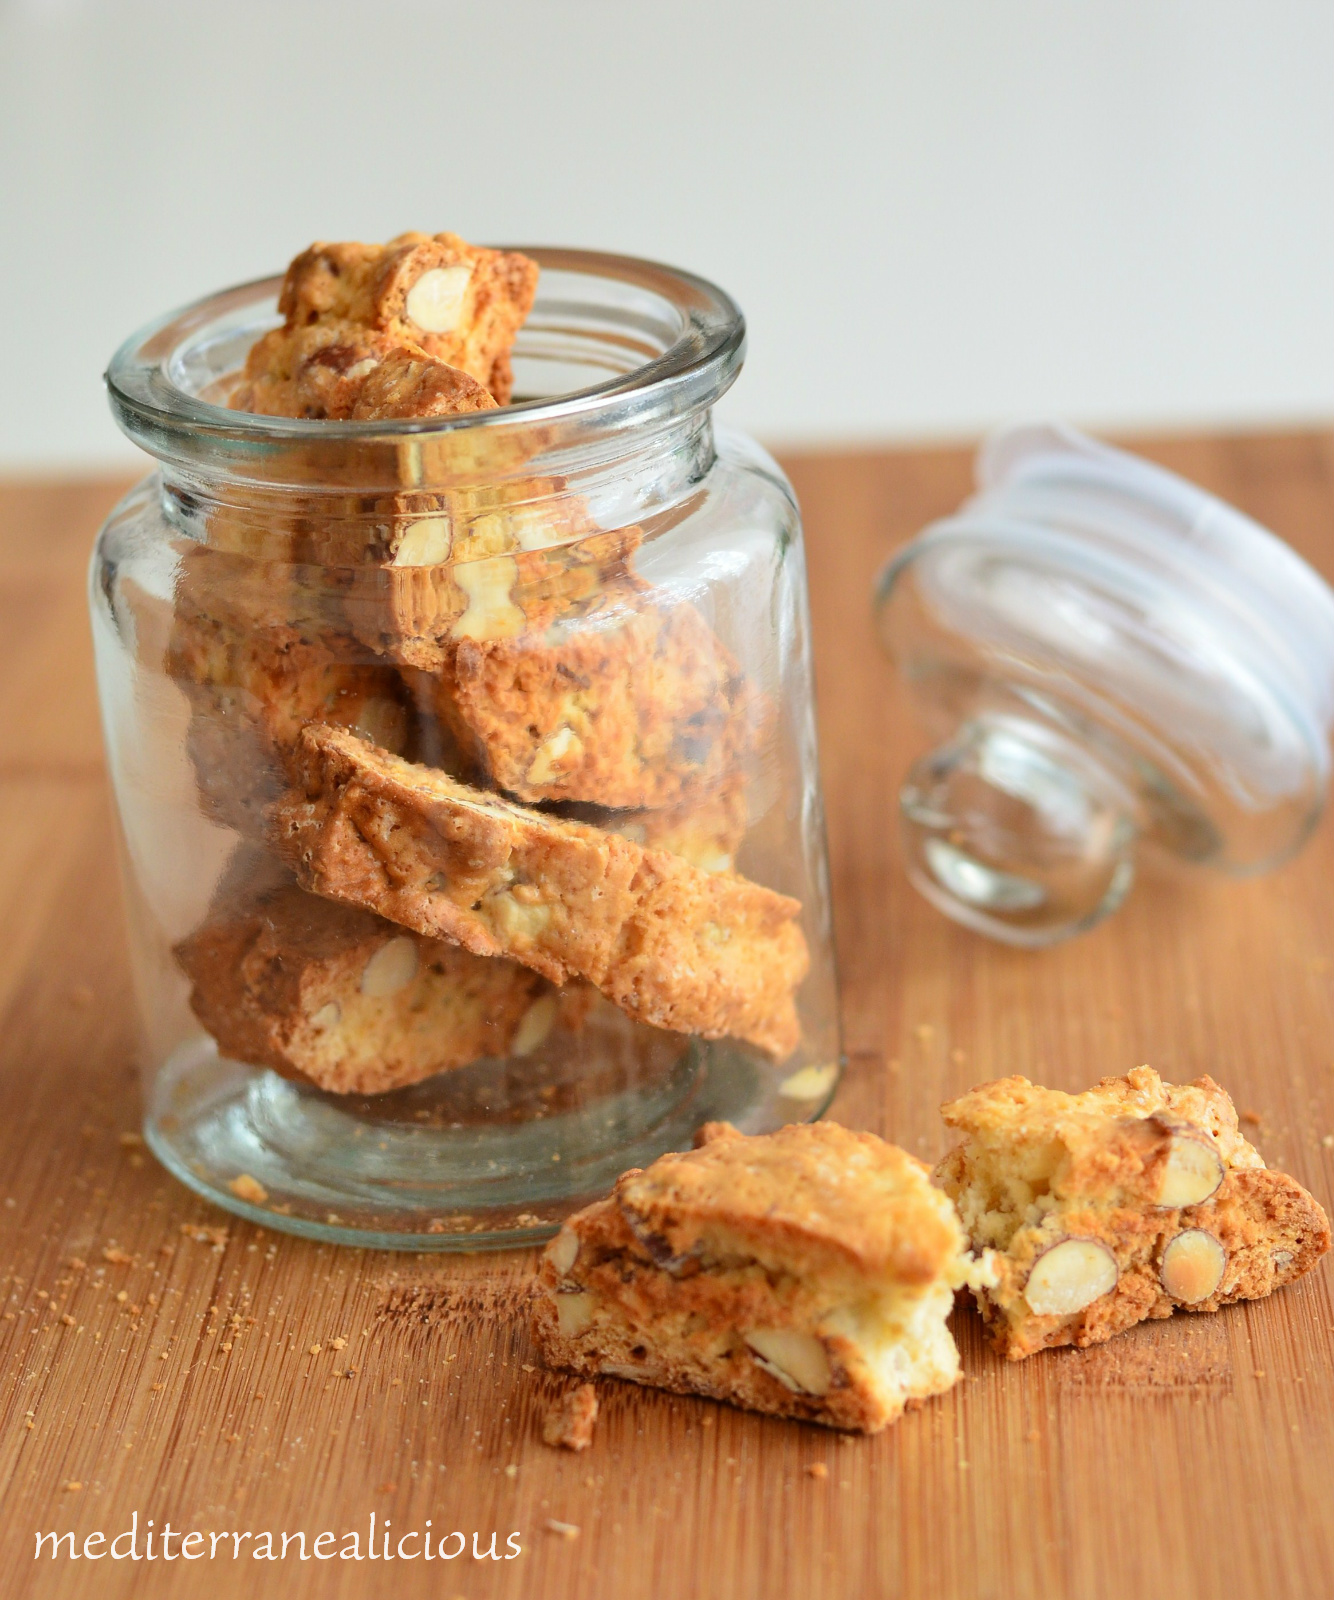 How to make cantucci cookies